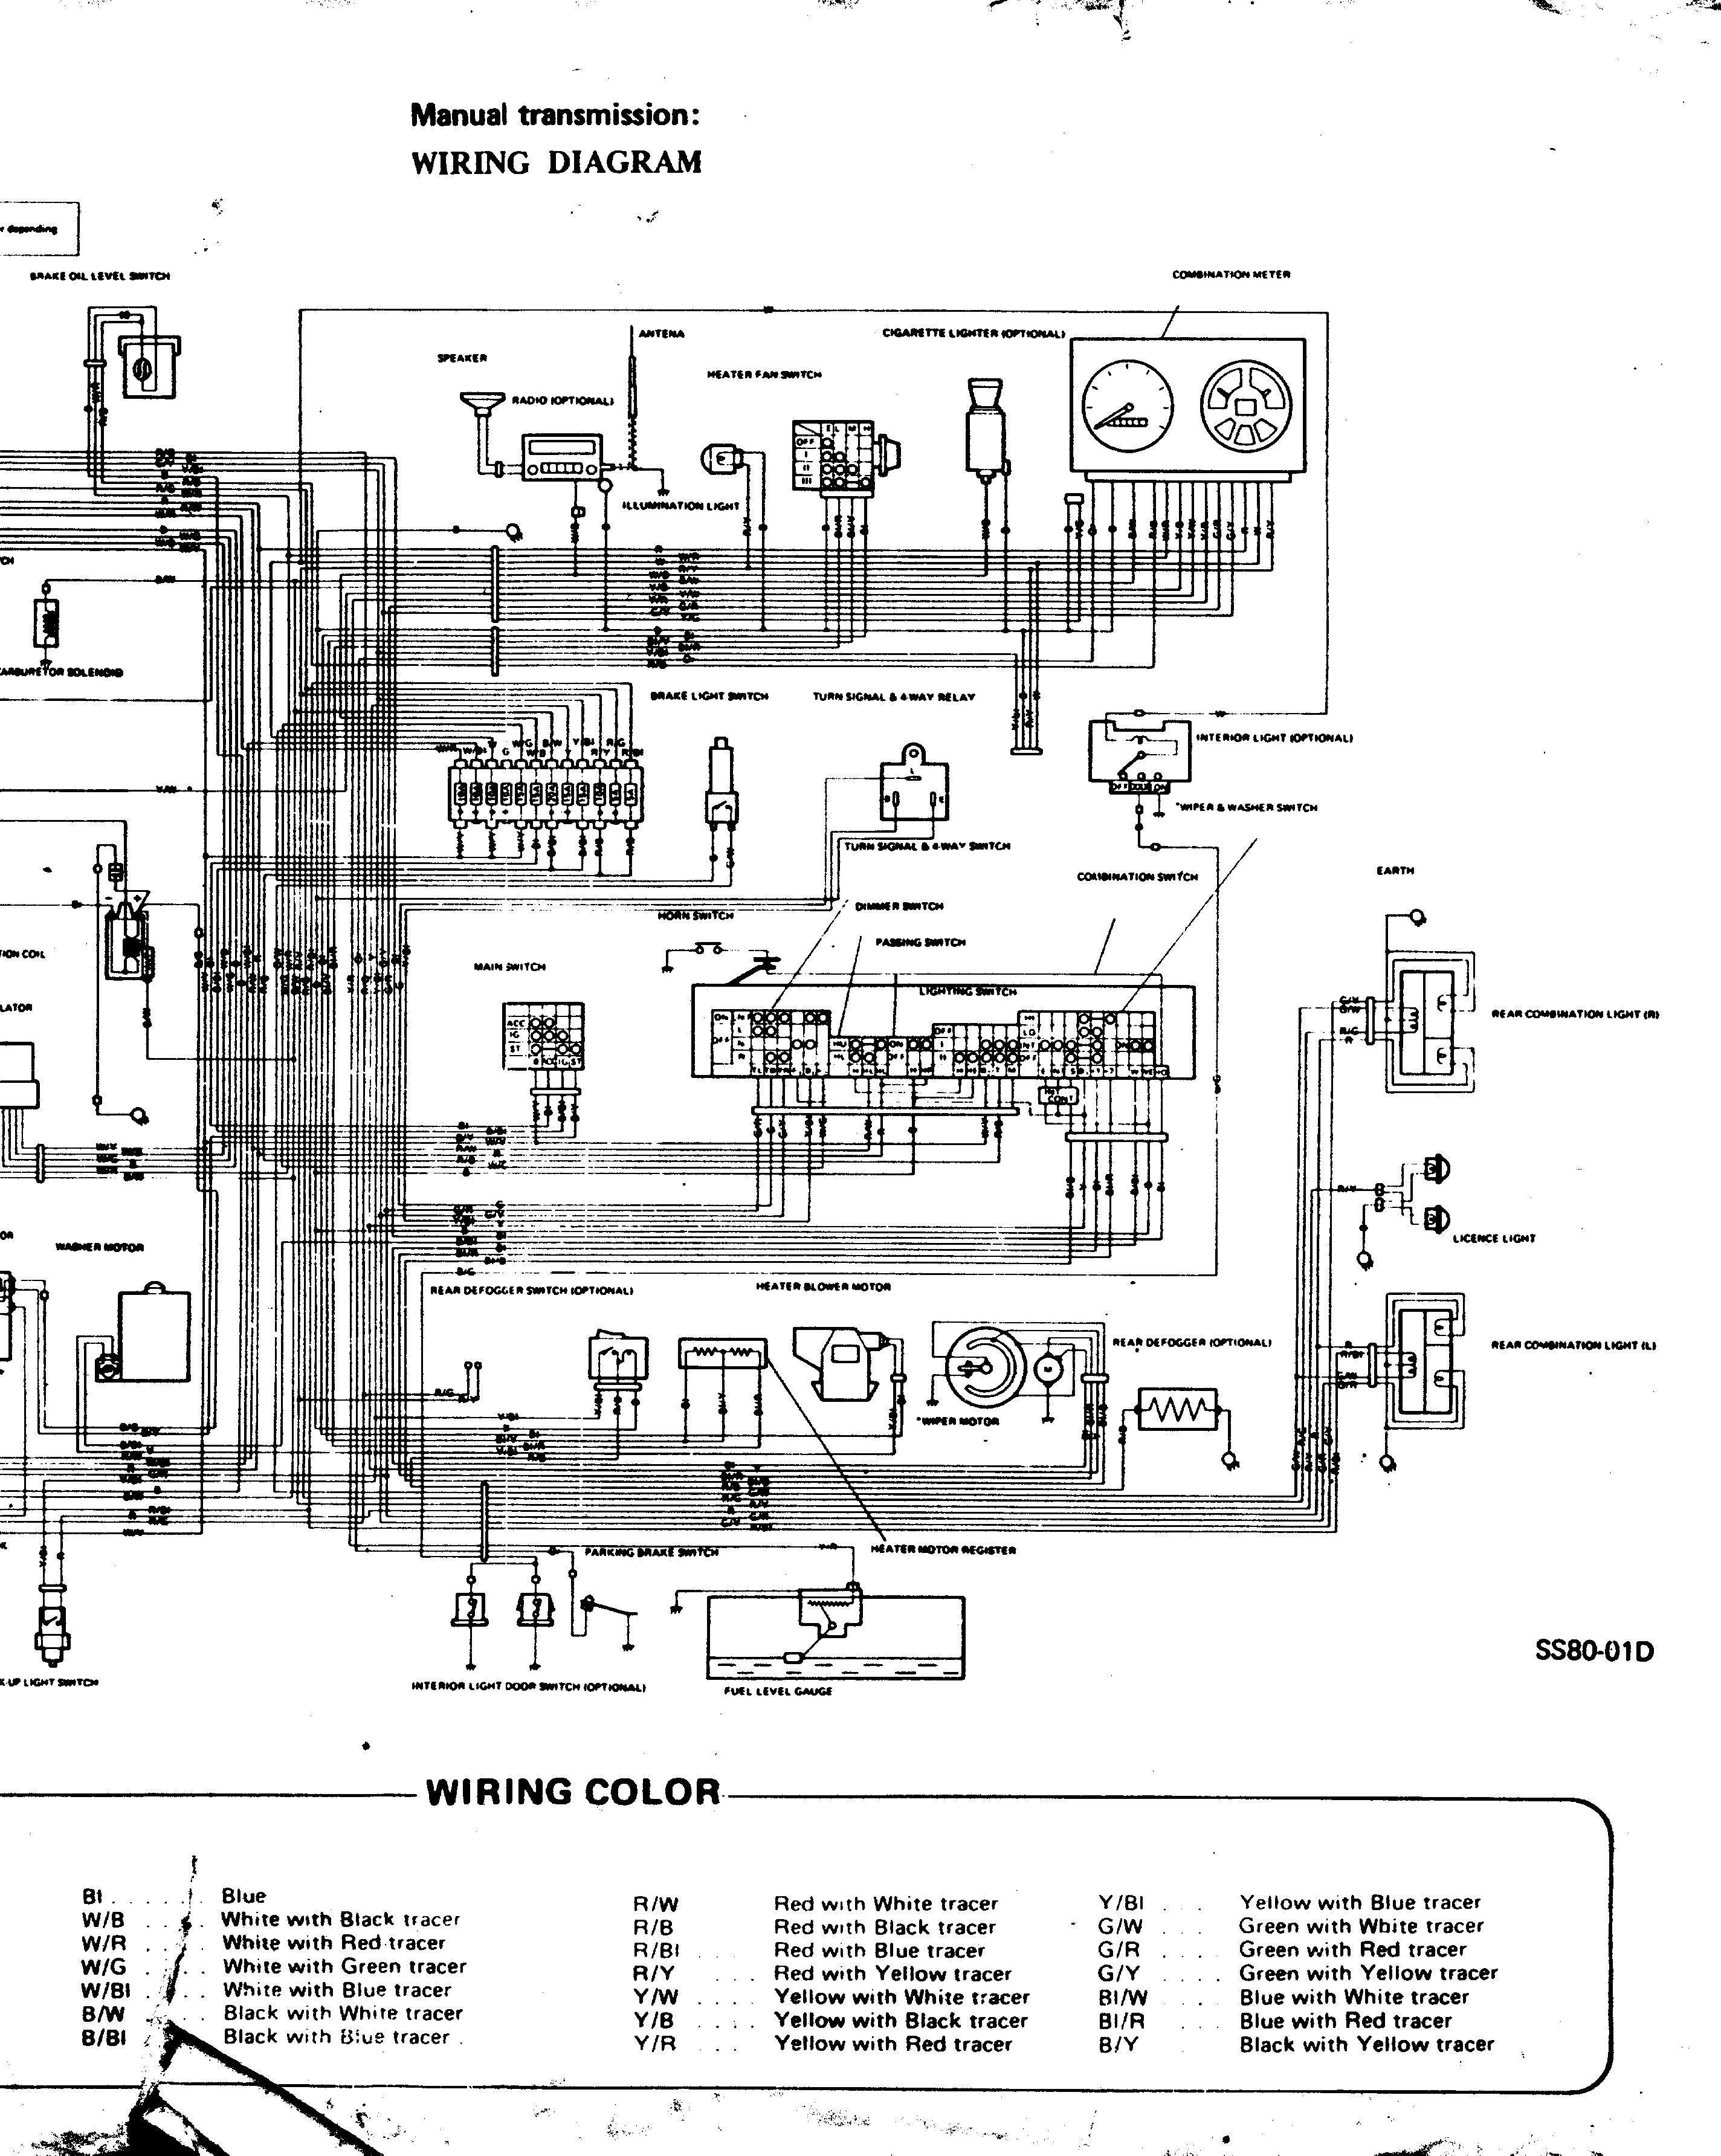 SOLVED: Maruti vehicles autoelectricals wiring diagrams